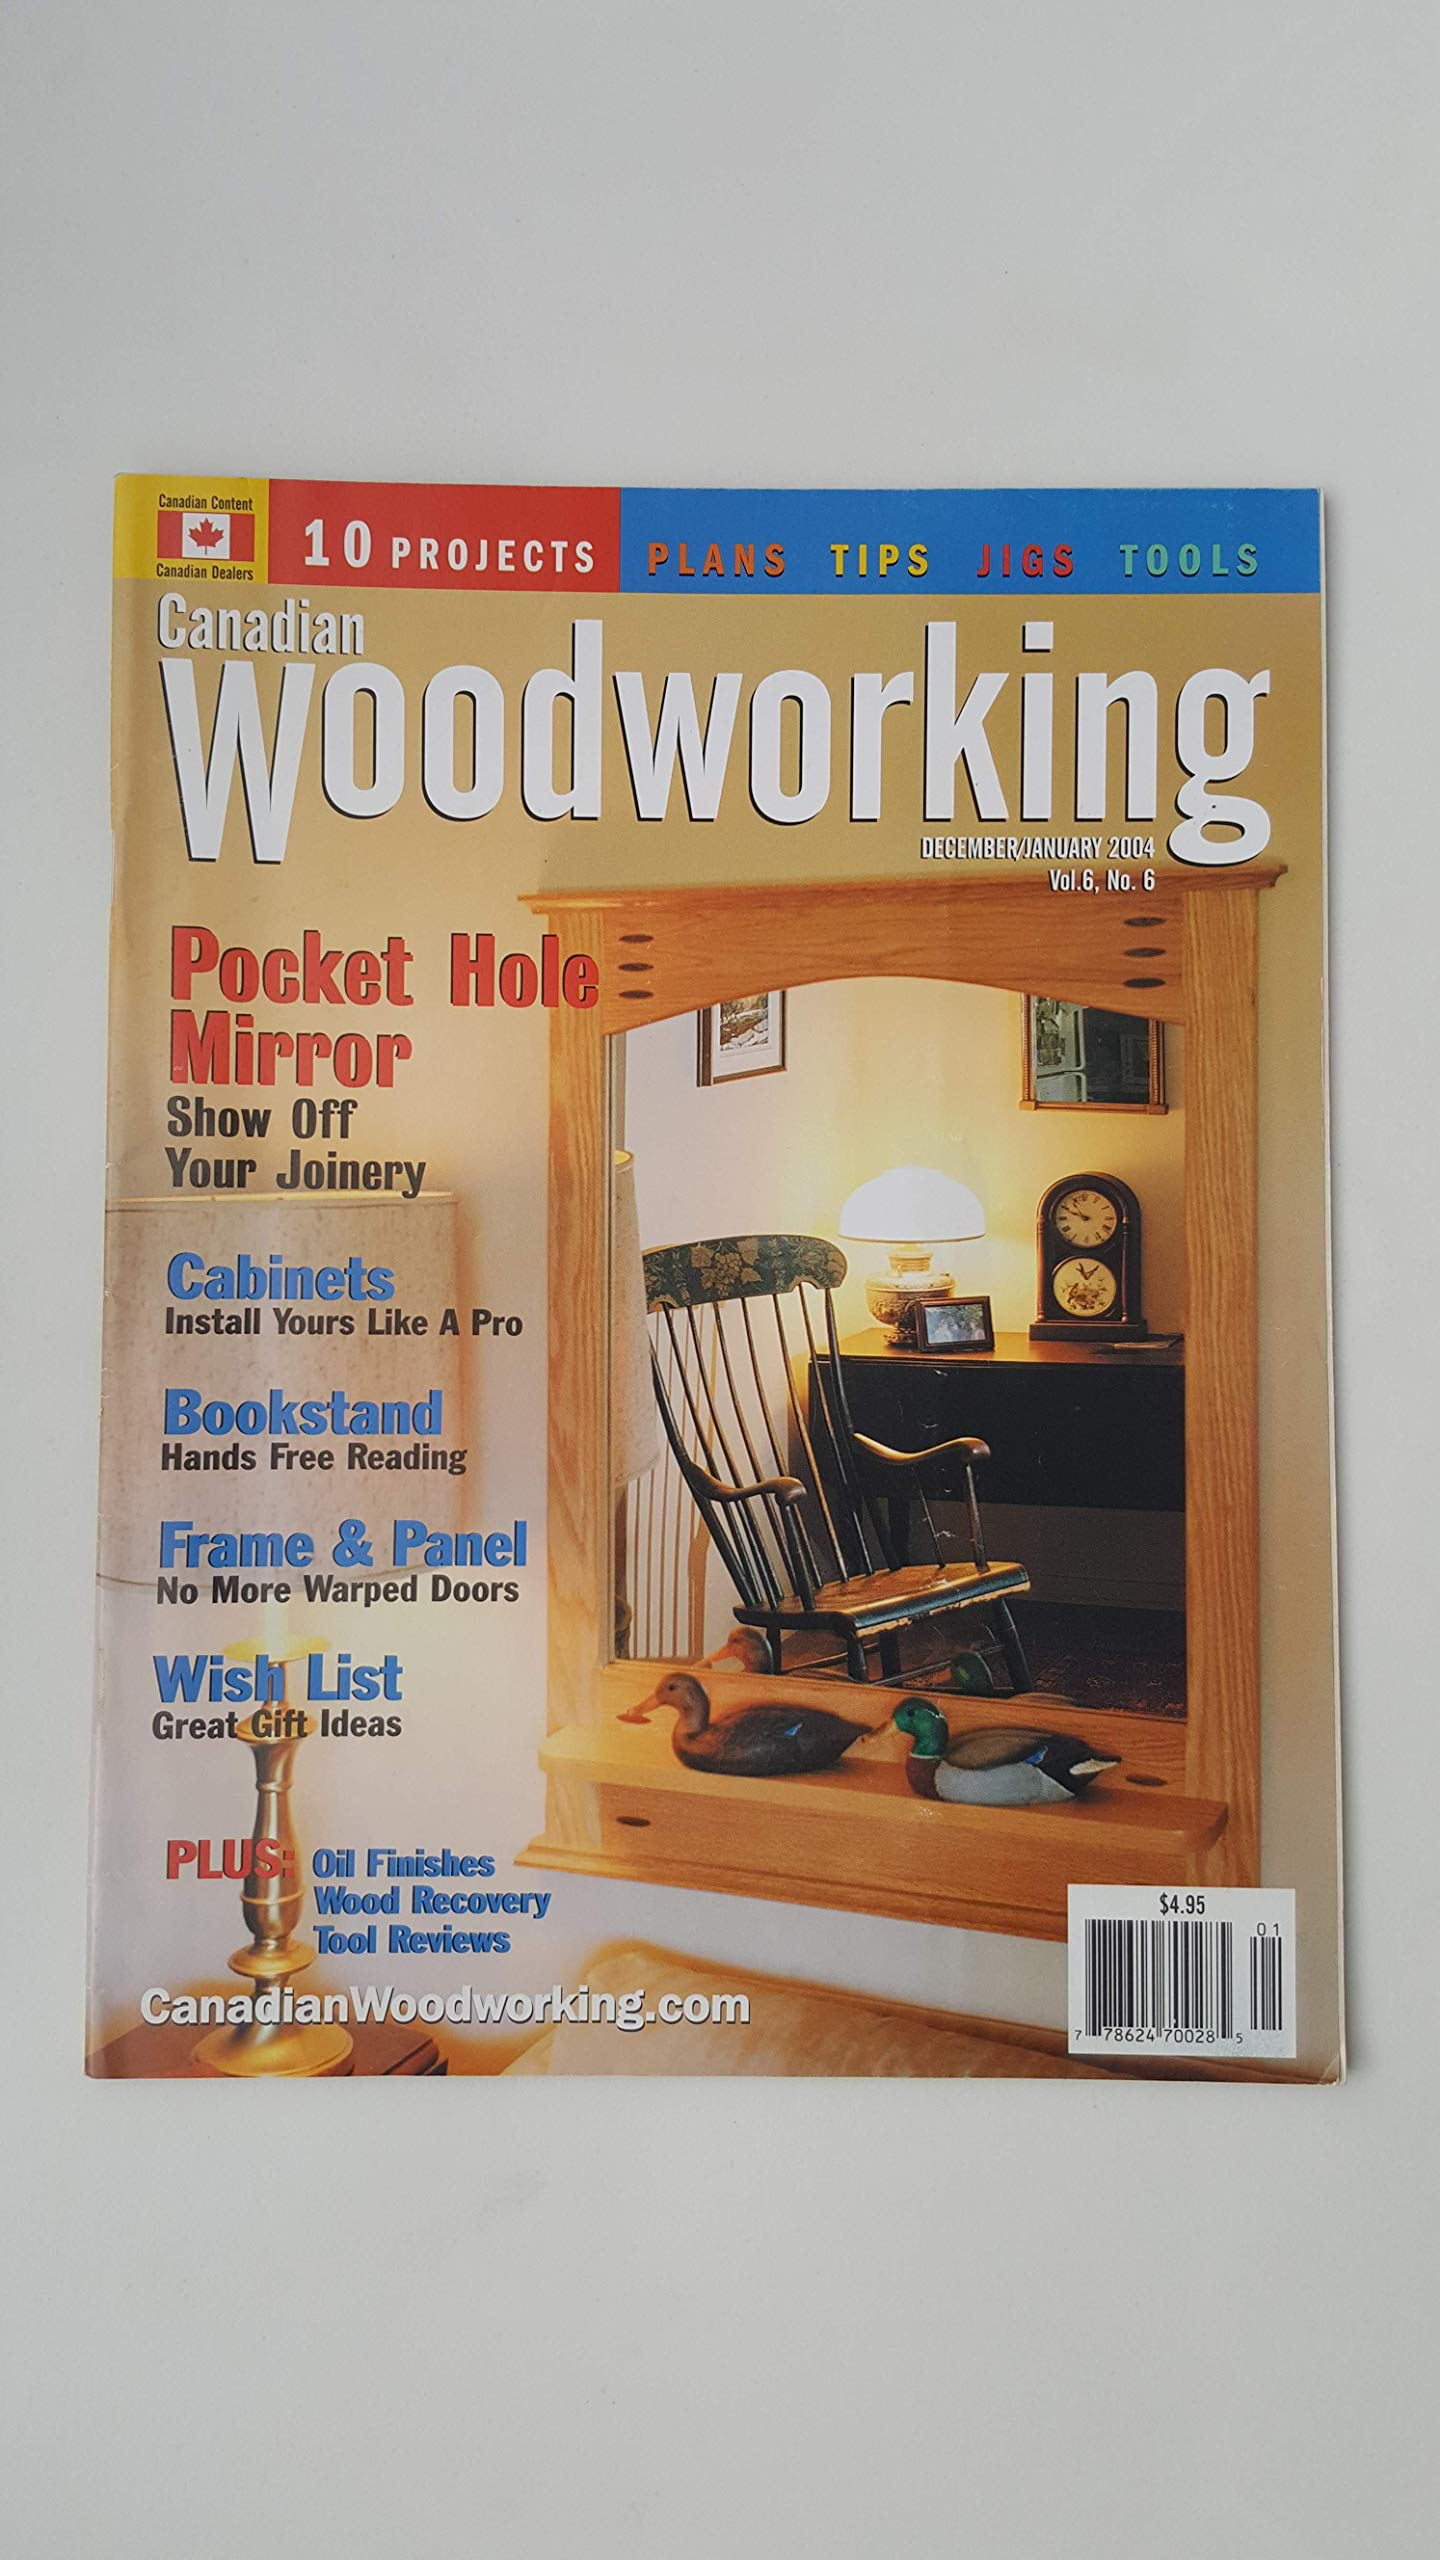 Canadian Woodworking Magazine December January 2004 Vol 6 No